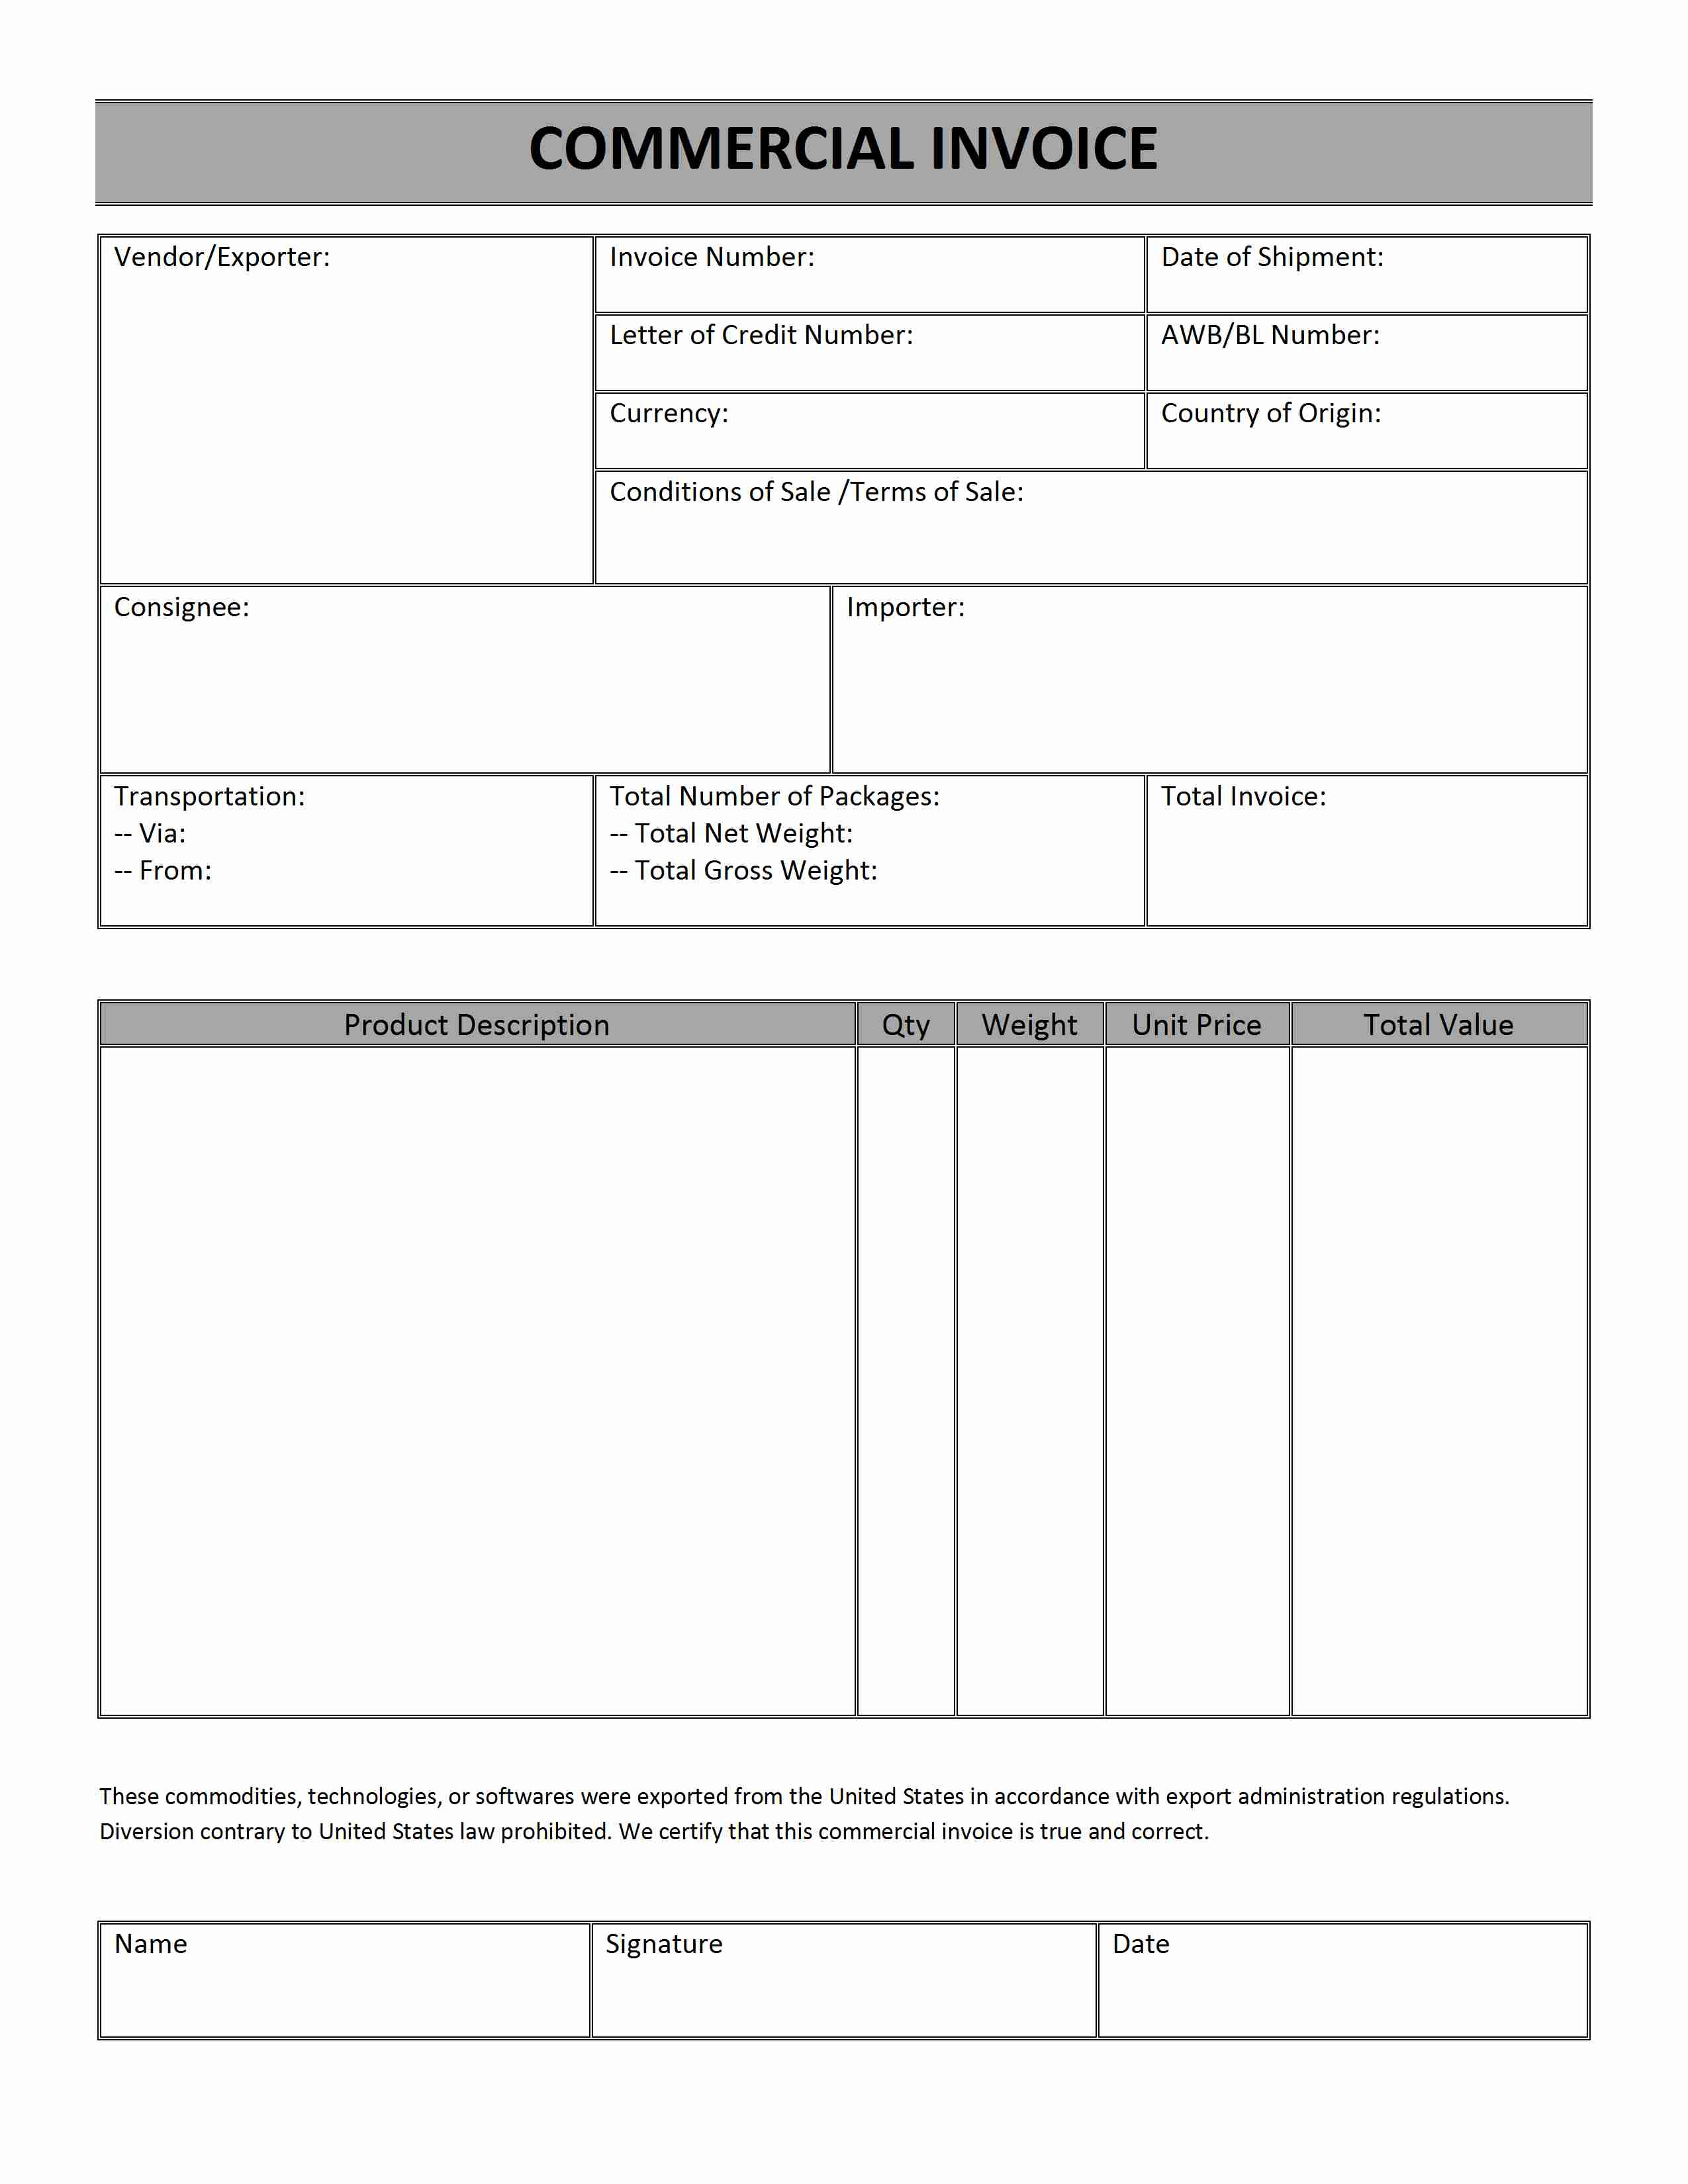 Floobydustus  Seductive Printable Sales Invoice Simple Invoice Form Free Invoice  With Remarkable Printable Receipt Free  Free Printable Raffle Tickets  Receipt   Printable With Nice What Does Proforma Mean On An Invoice Also Tax Invoice Template Free Download In Addition Amazon Invoice Address And Software For Billing And Invoicing As Well As Software Invoices Additionally Easy Invoice Software Free Download From Happytomco With Floobydustus  Remarkable Printable Sales Invoice Simple Invoice Form Free Invoice  With Nice Printable Receipt Free  Free Printable Raffle Tickets  Receipt   Printable And Seductive What Does Proforma Mean On An Invoice Also Tax Invoice Template Free Download In Addition Amazon Invoice Address From Happytomco